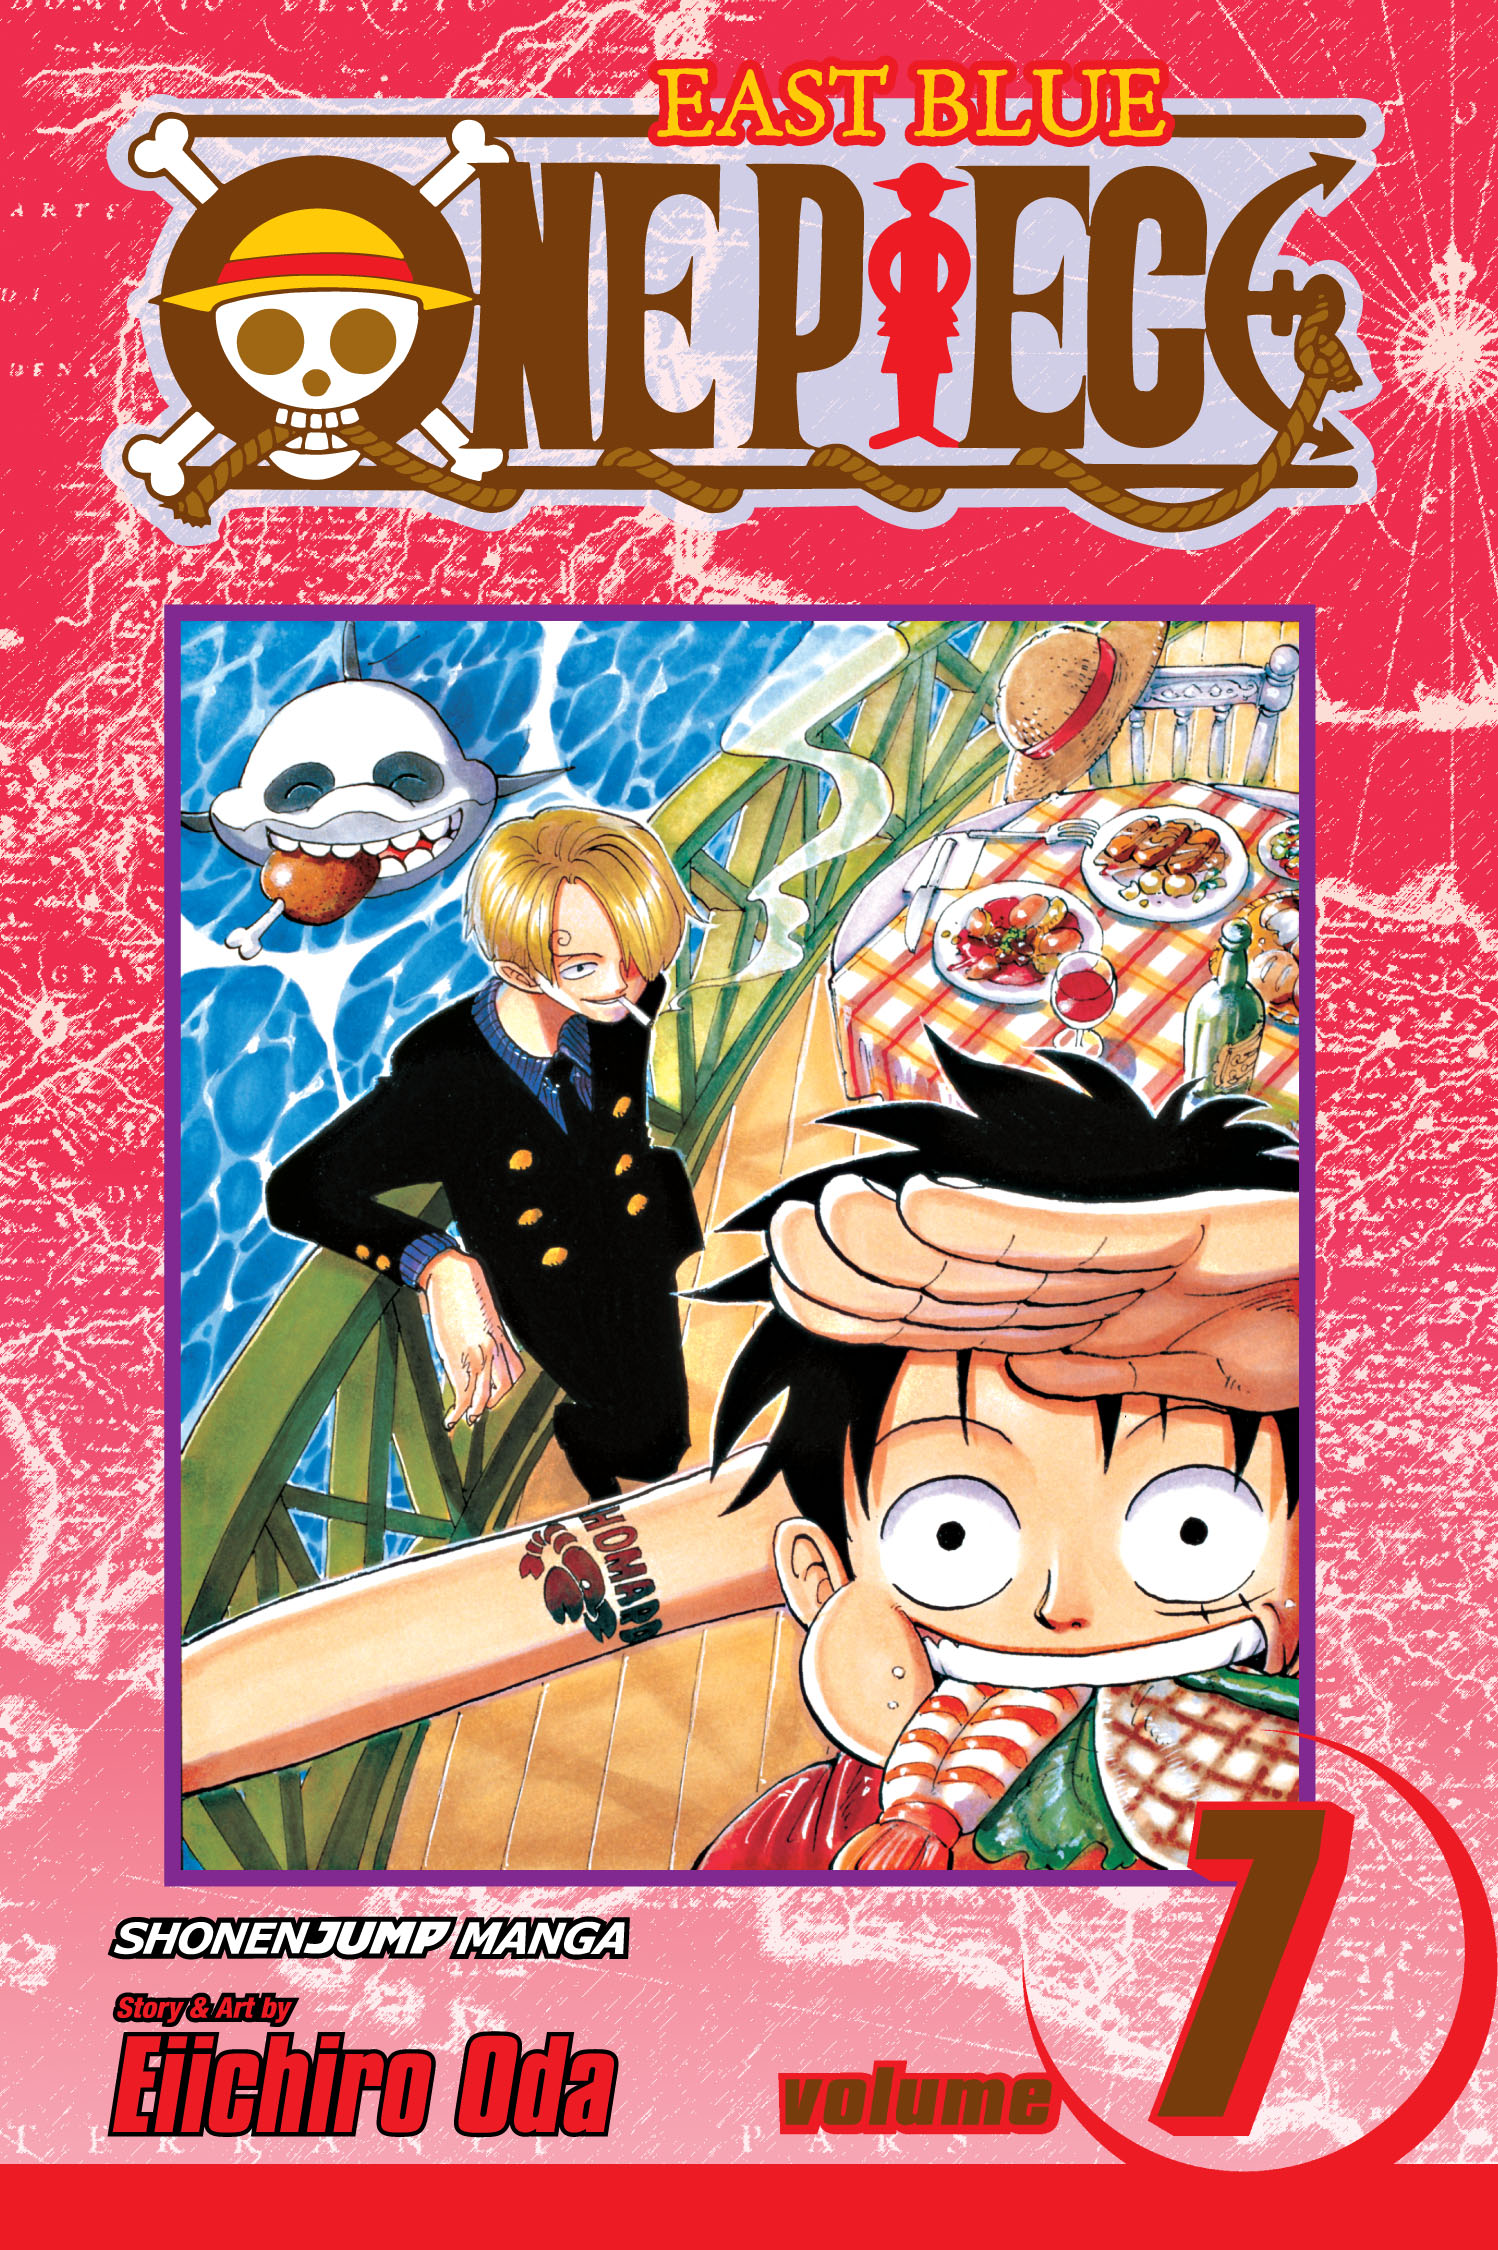 One Piece, Vol. 7   Book by Eiichiro Oda   Official Publisher Page   Simon & Schuster Canada